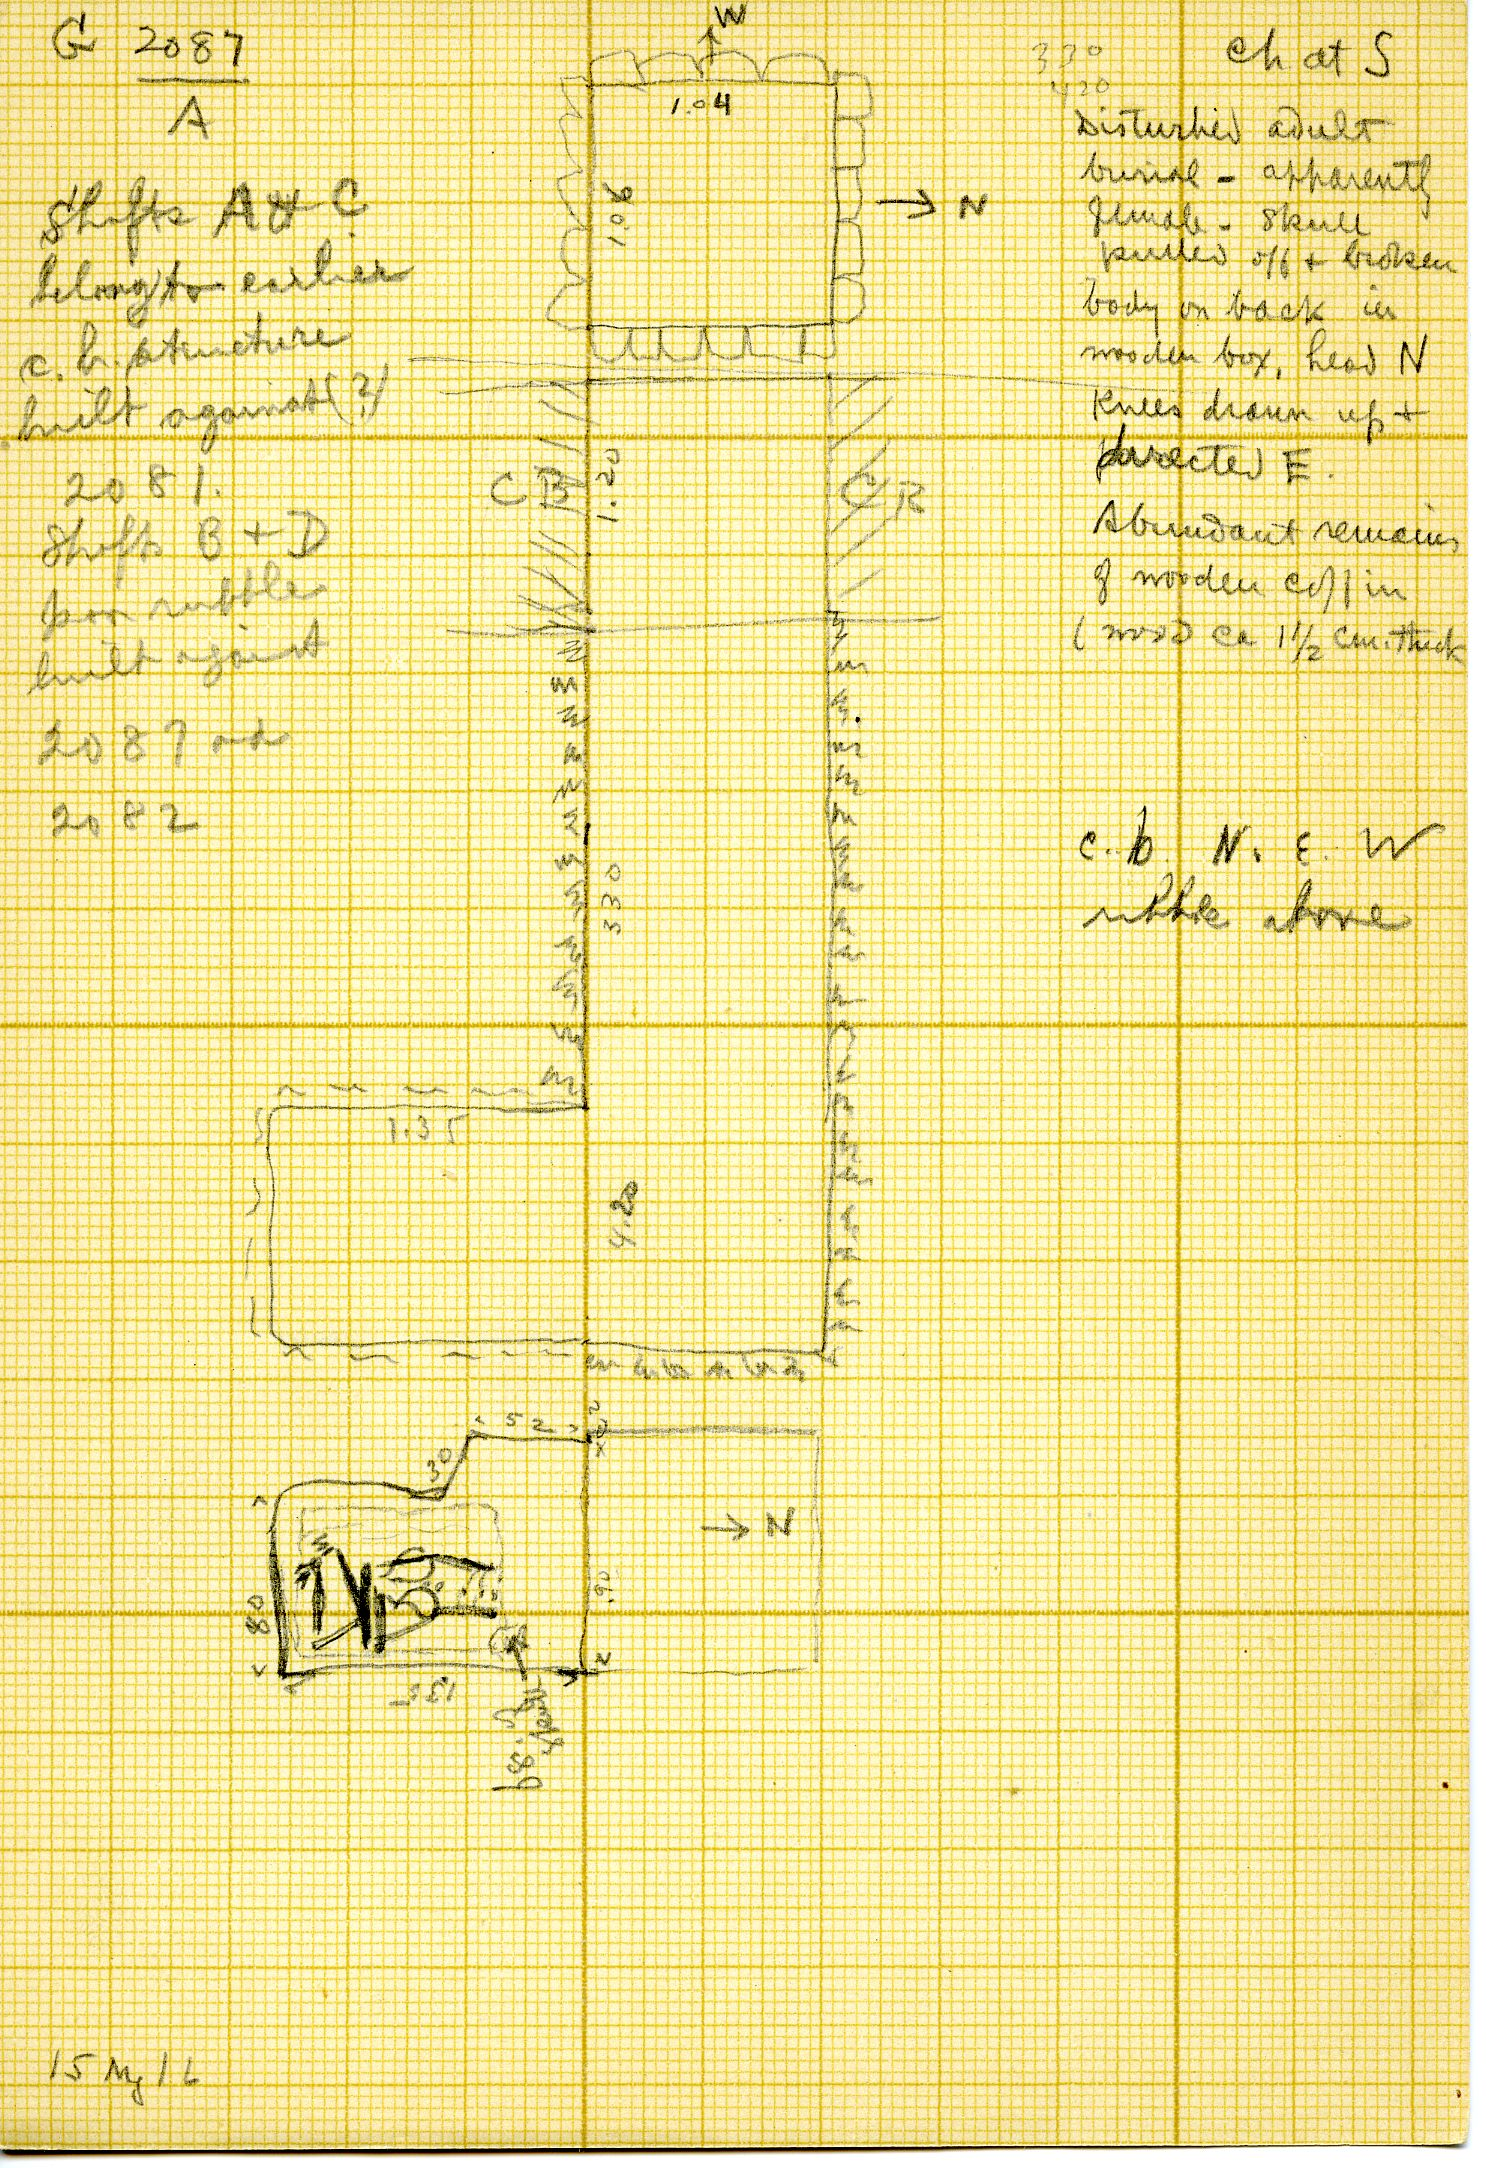 Maps and plans: G 3087, Shaft A